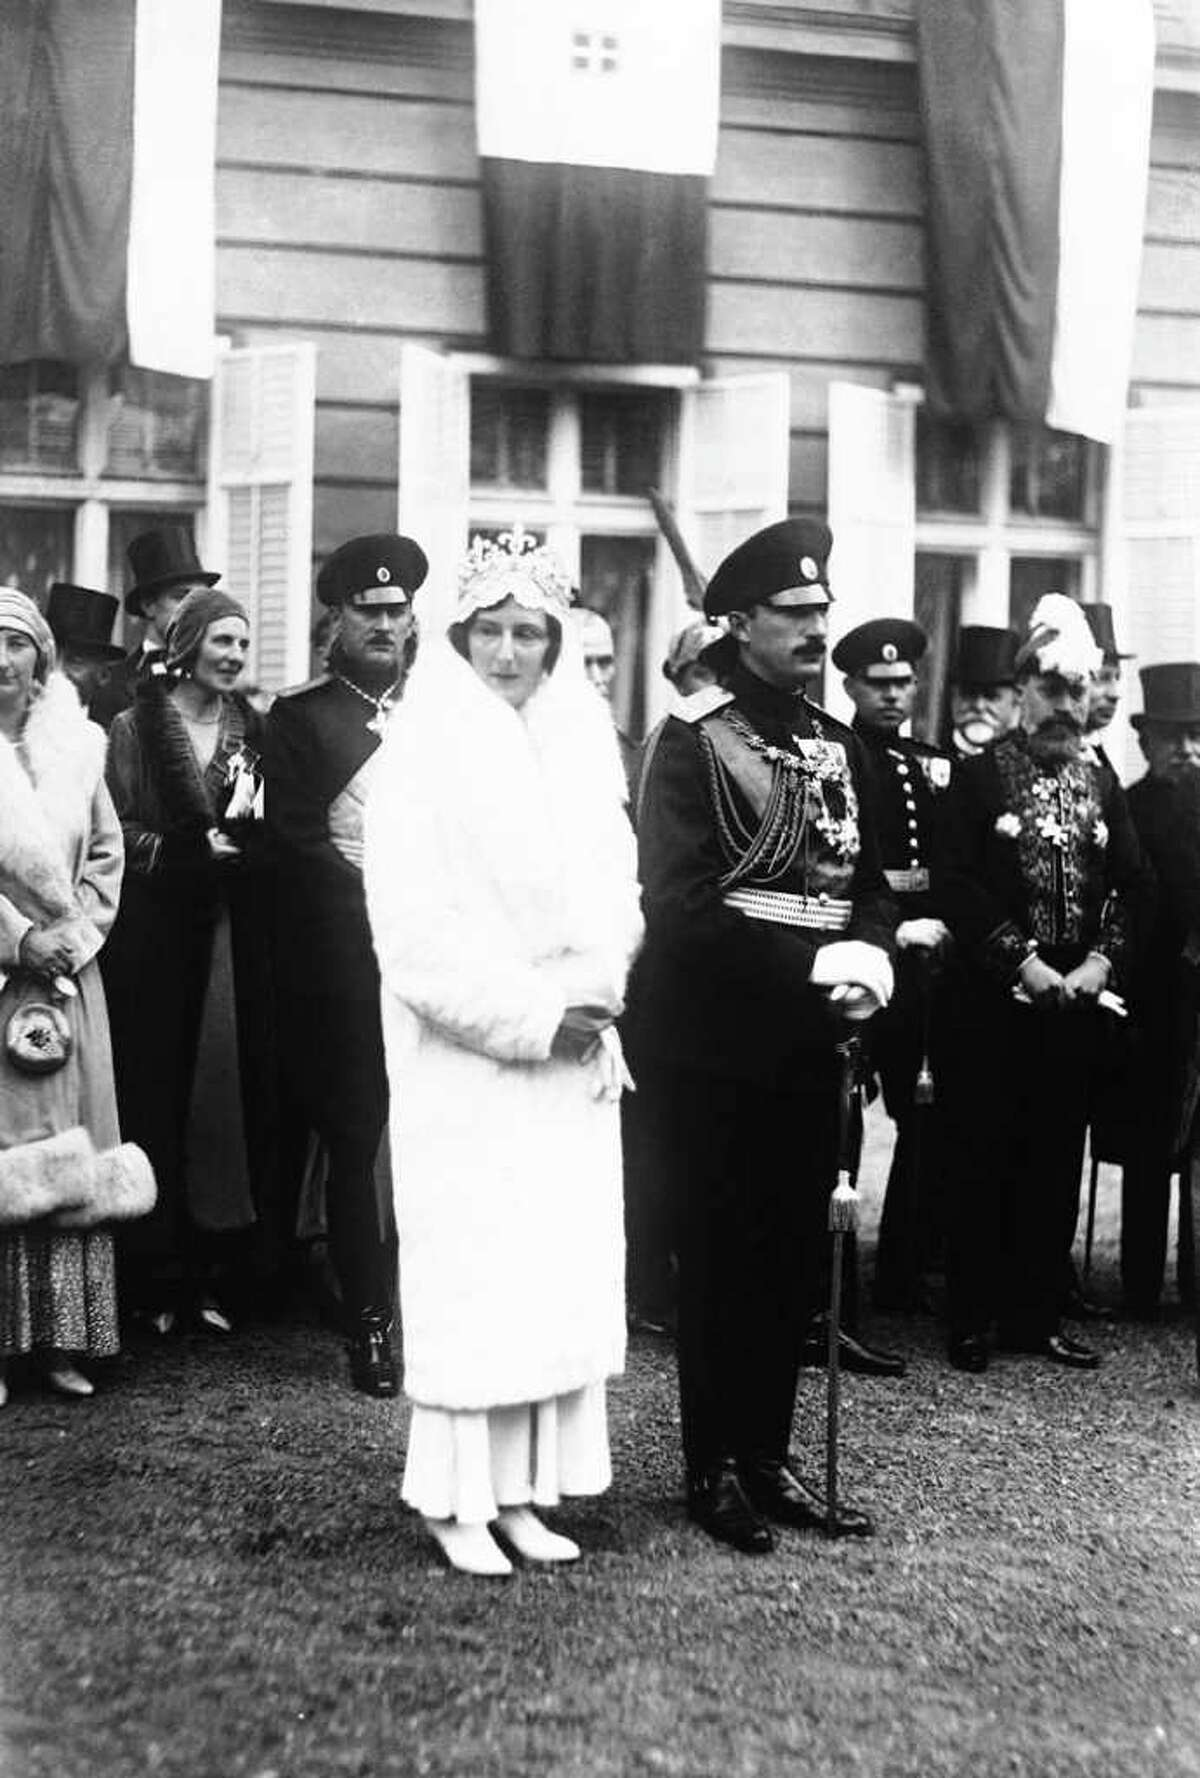 King Boris III of Bulgaria, known as the Unifier and Tsar of Bulgaria and Princess Giovanna of Italy after they had a second marriage ceremony at the Cathedral of St. Alexandre Nevski in Sofia, Bulgaria, around Nov. 4, 1930. L-R: Princess Eudoxie, Sister of Boris; Prince Kiril, brother of Boris; King Boris and his bride after the ceremony. (AP Photo)